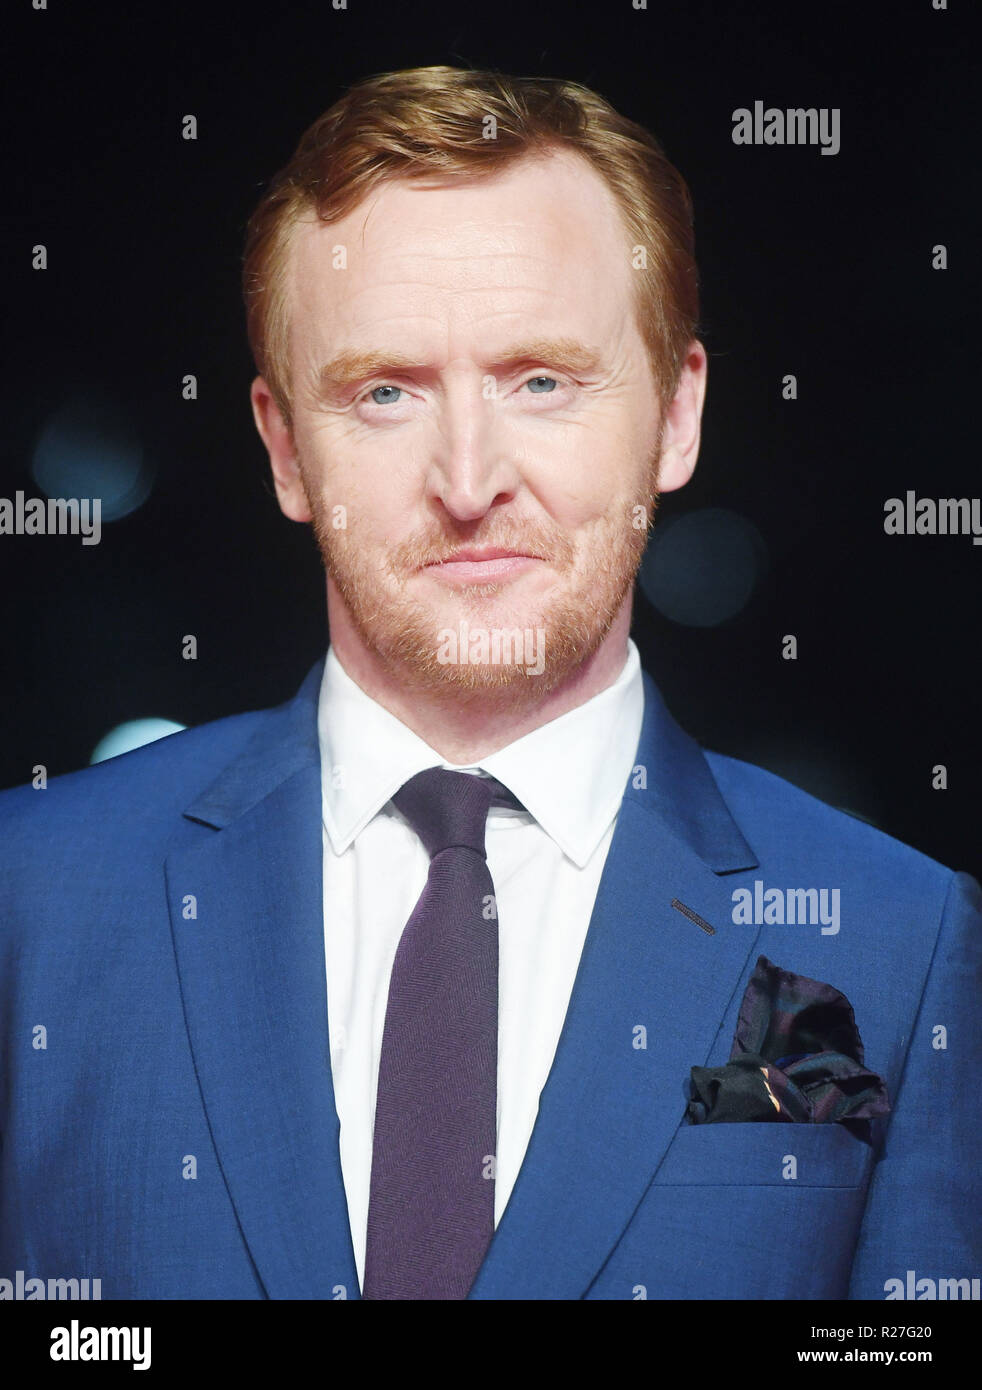 62nd London Film Festival - The Outllaw King - Premiere  Featuring: Tony Curran Where: London, United Kingdom When: 17 Oct 2018 Credit: WENN.com Stock Photo